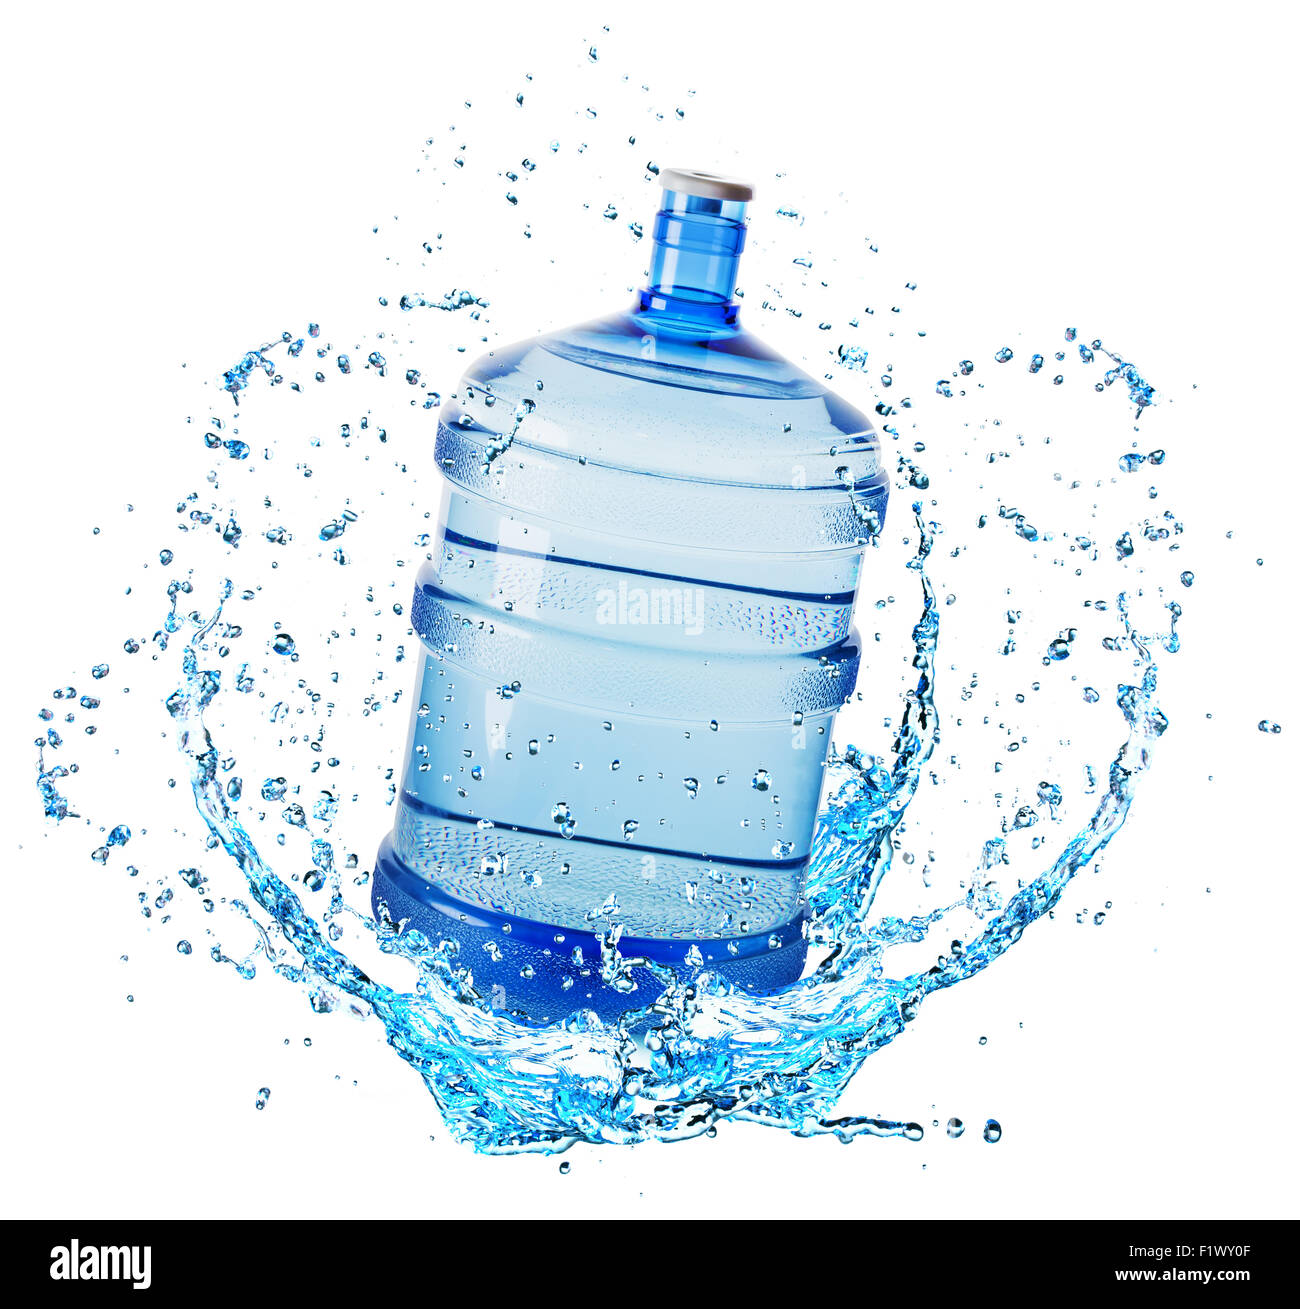 big water bottle in water splash isolated on white background. - Stock Image